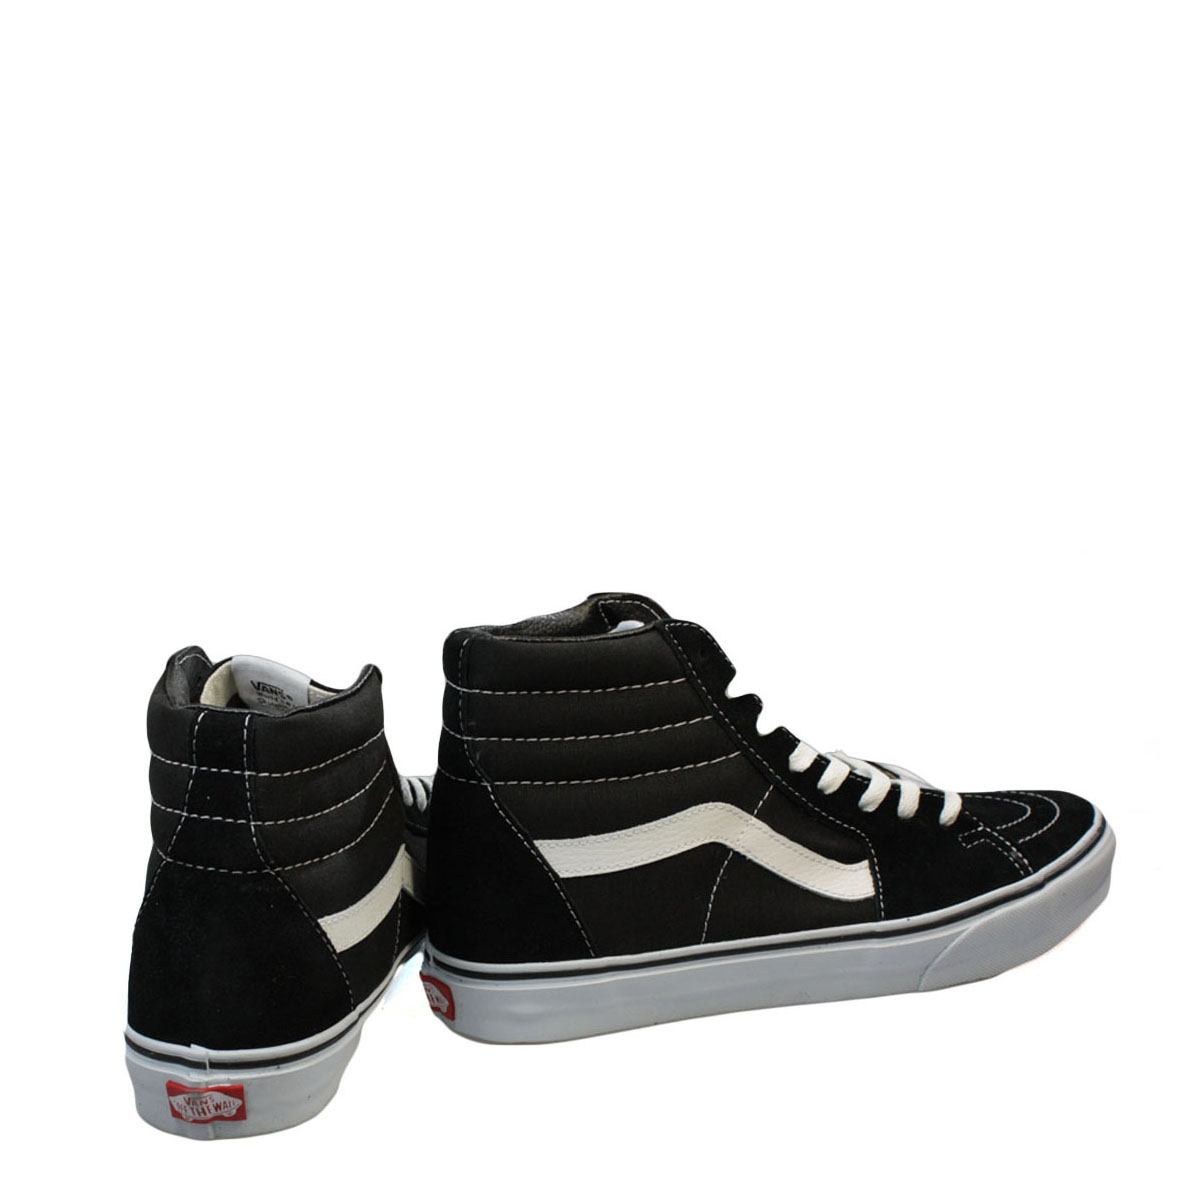 vans womens black high tops